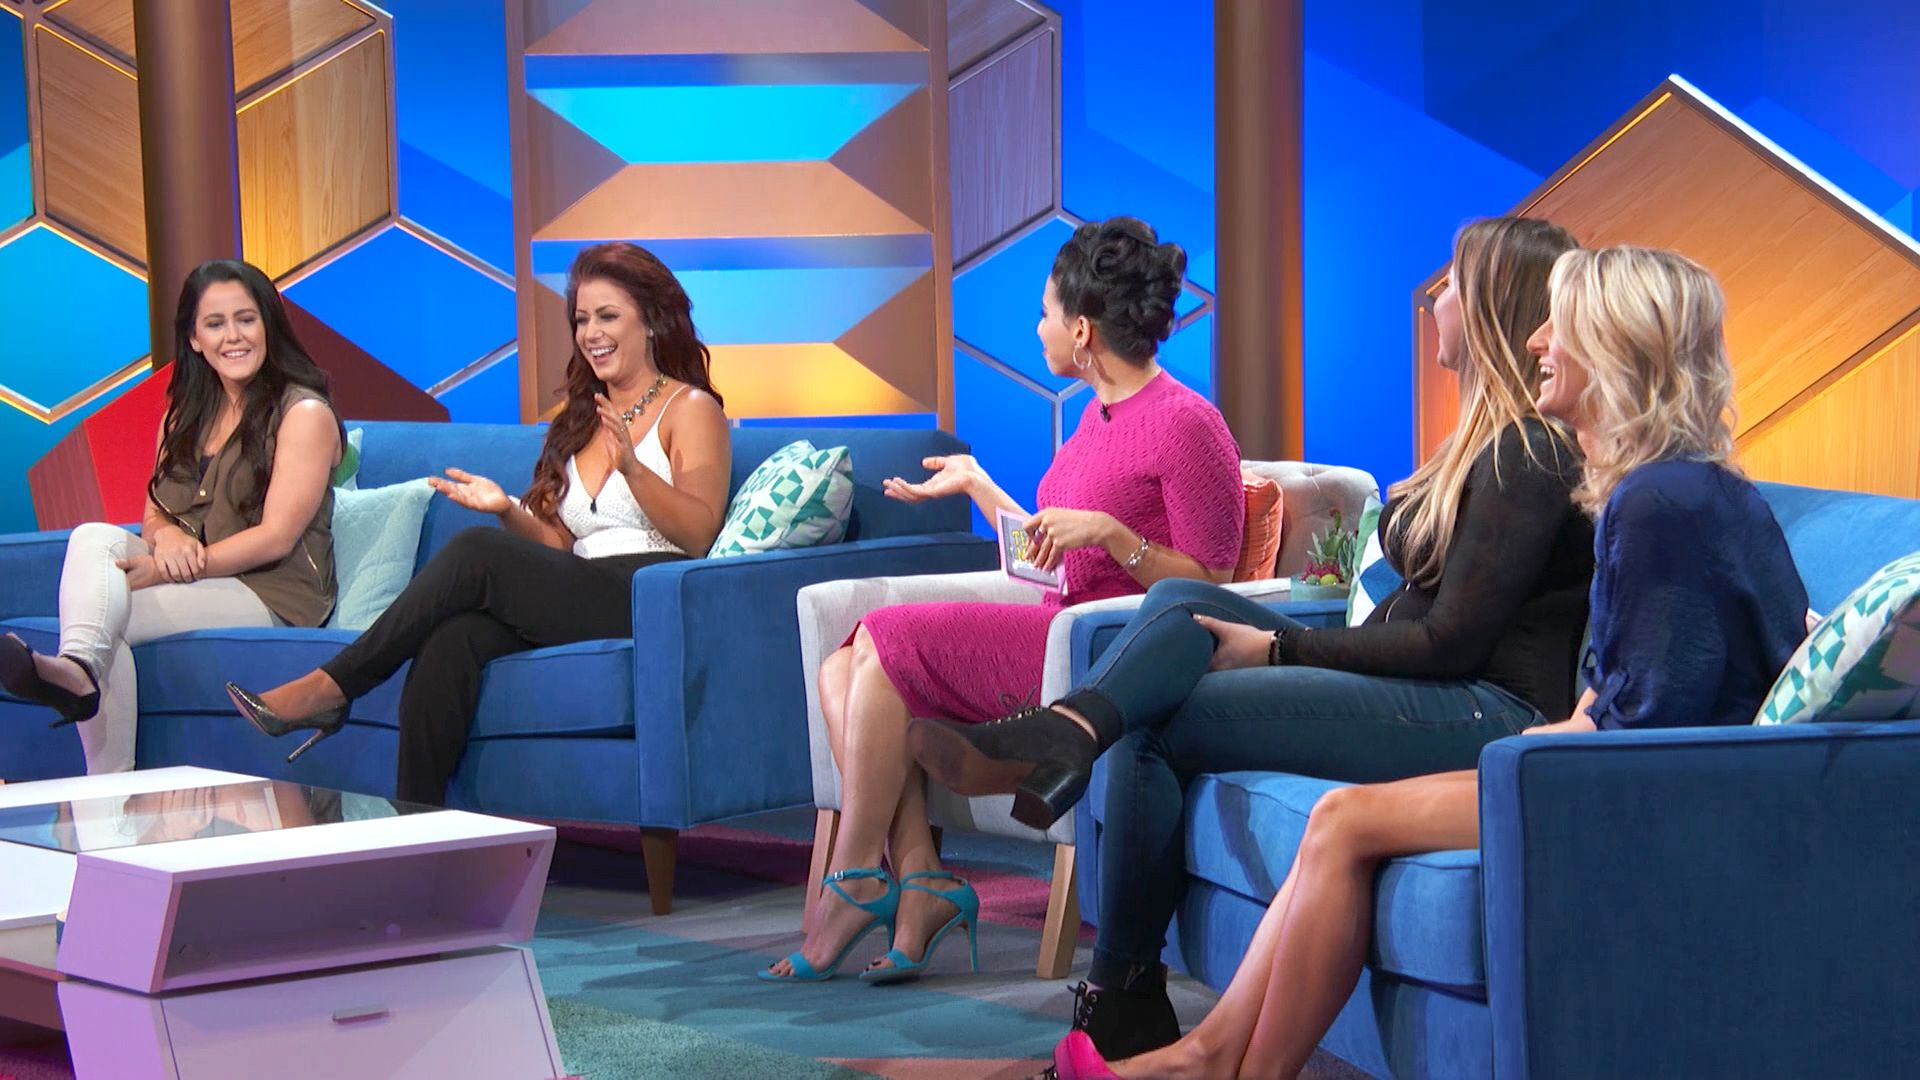 Really Mtv teen mom unseen mom final, sorry